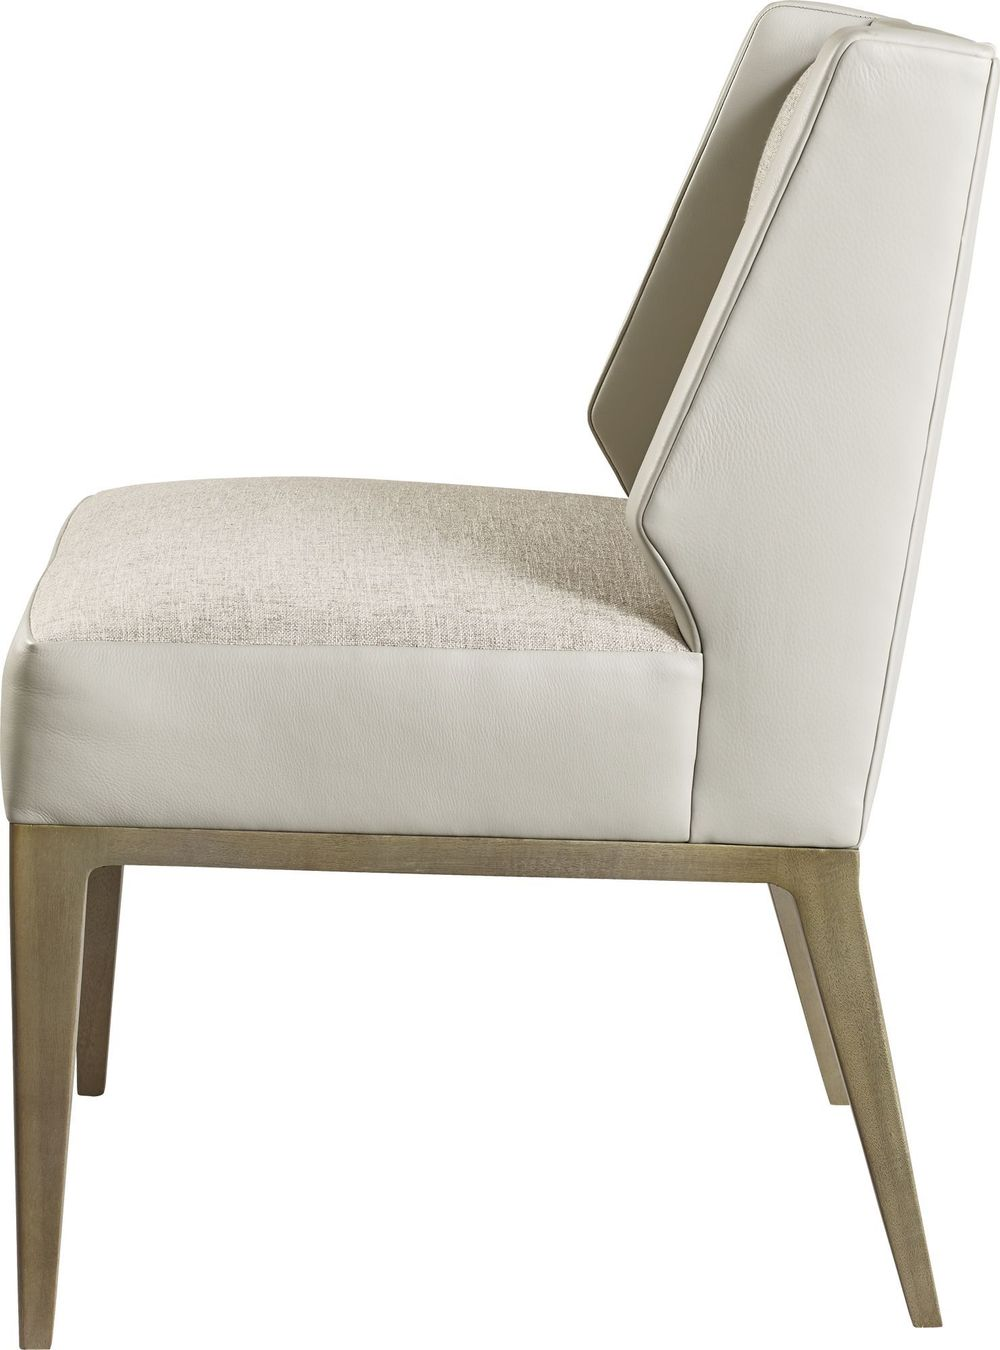 Baker Furniture - Kukio Side Chair